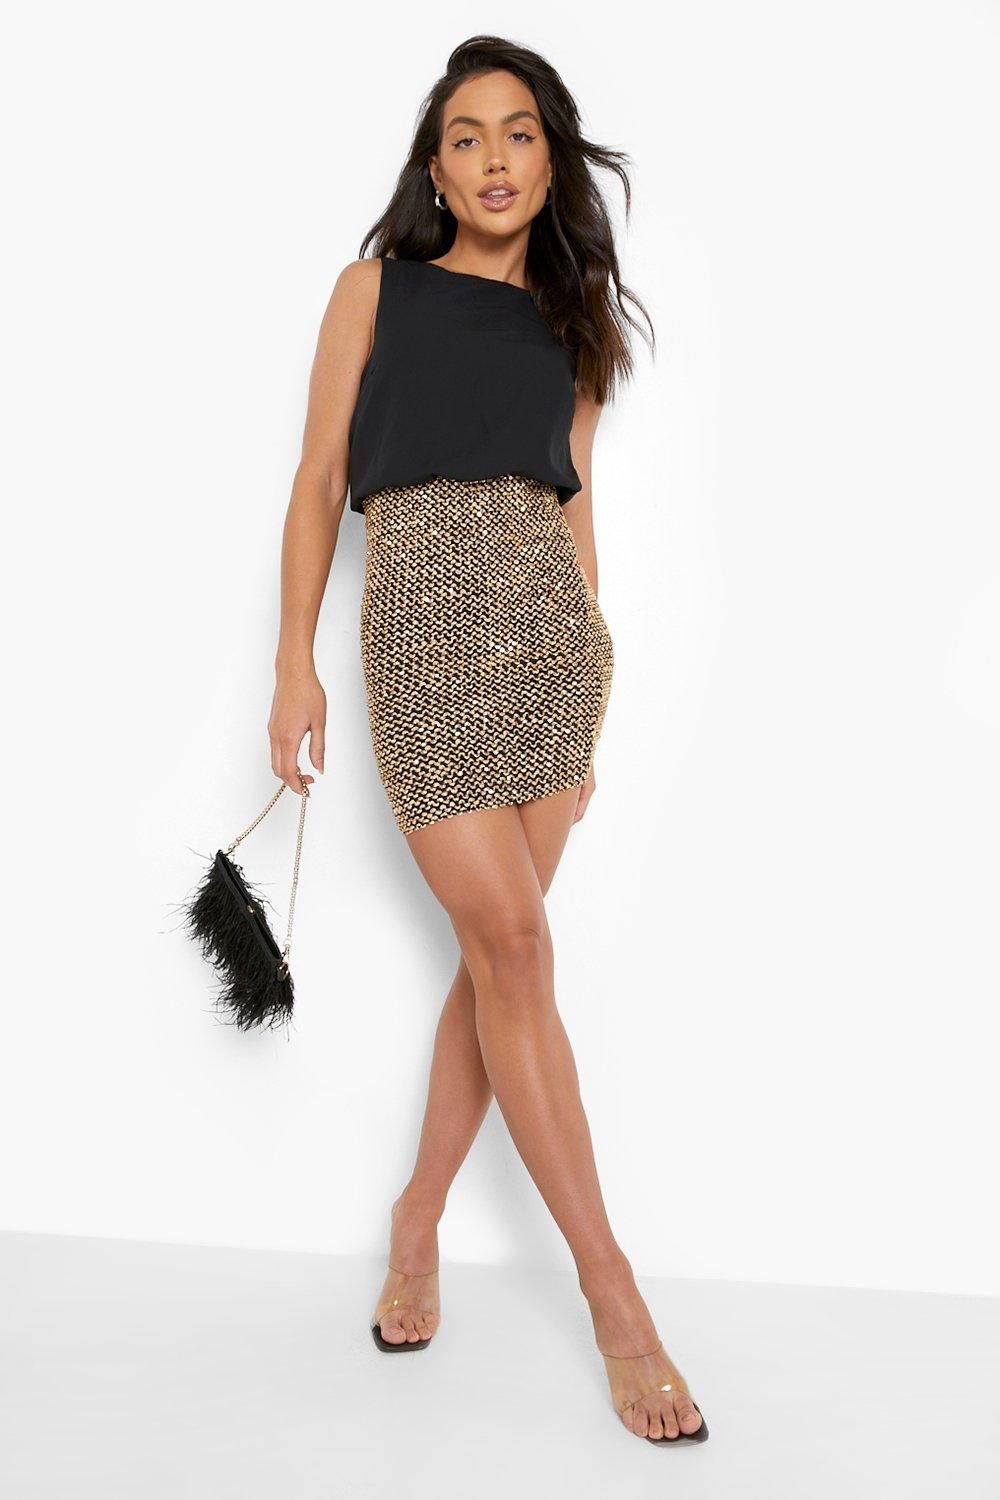 94886ecbb4ee Boohoo Womens Delia 2 in 1 Chiffon Top Sequin Skirt Bodycon Dress